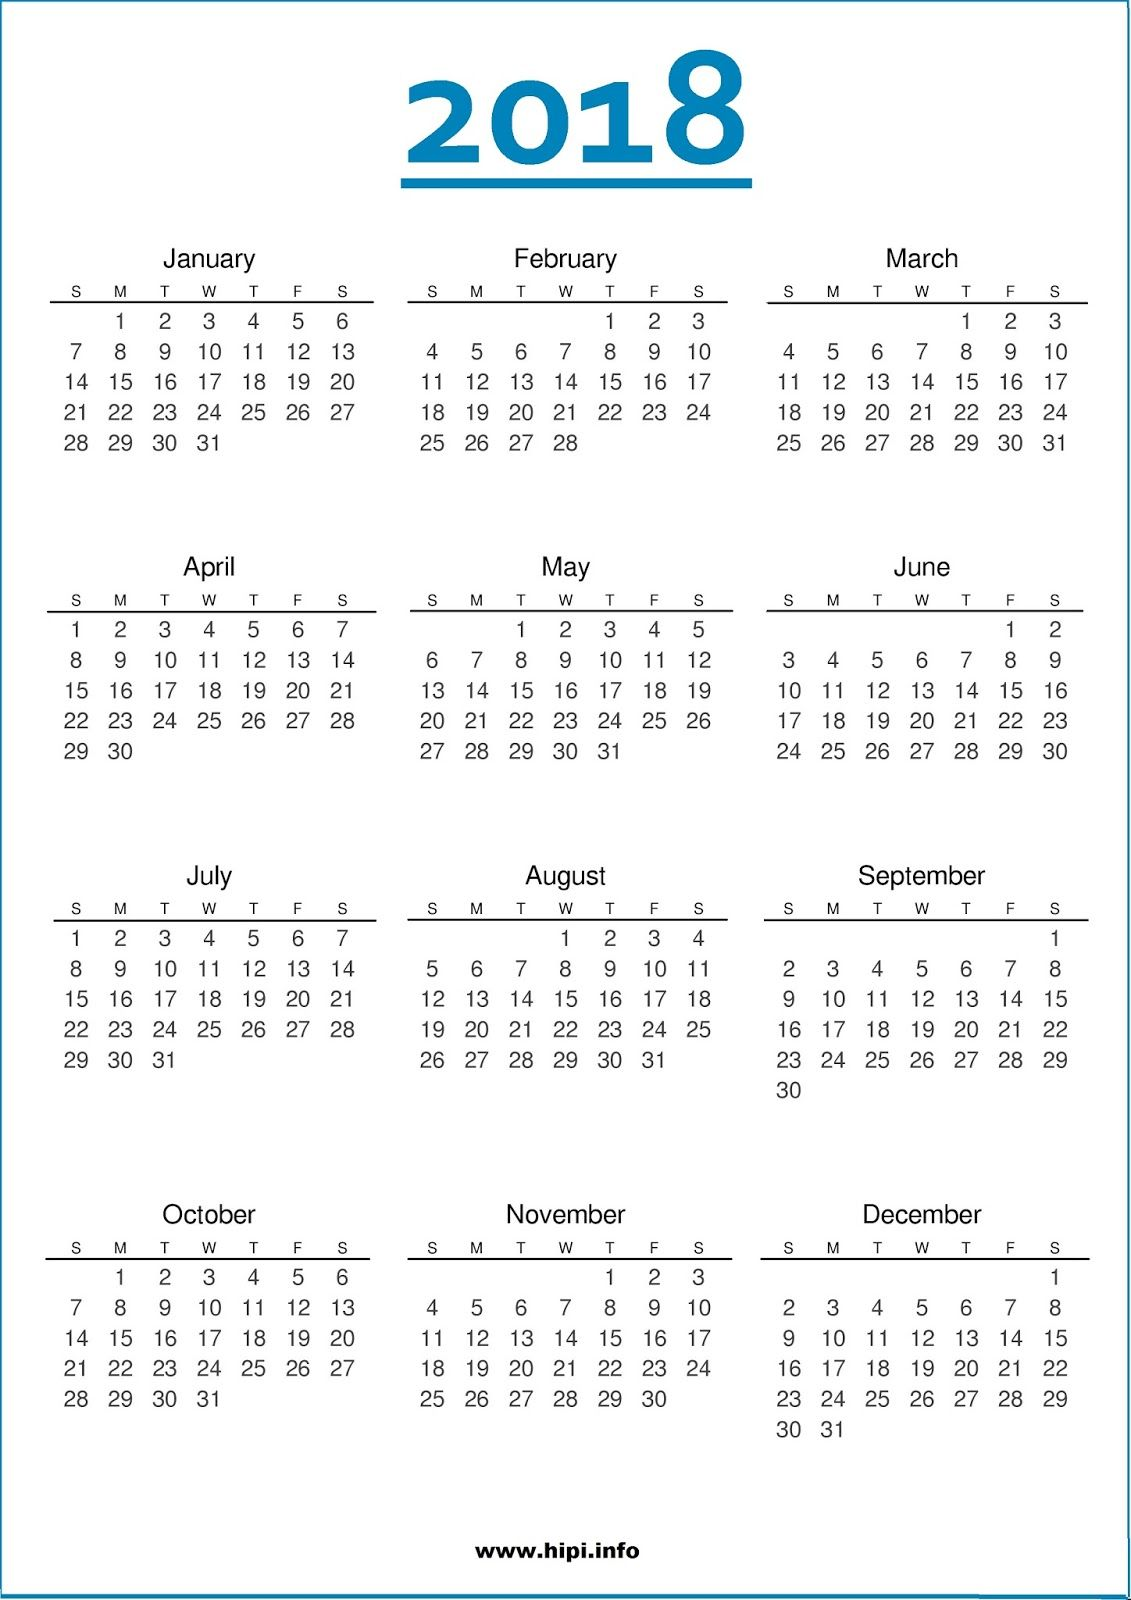 photograph relating to Printable Calendar on One Page called 2018 Calendar 1 Webpage November Calendar 2018 calendar